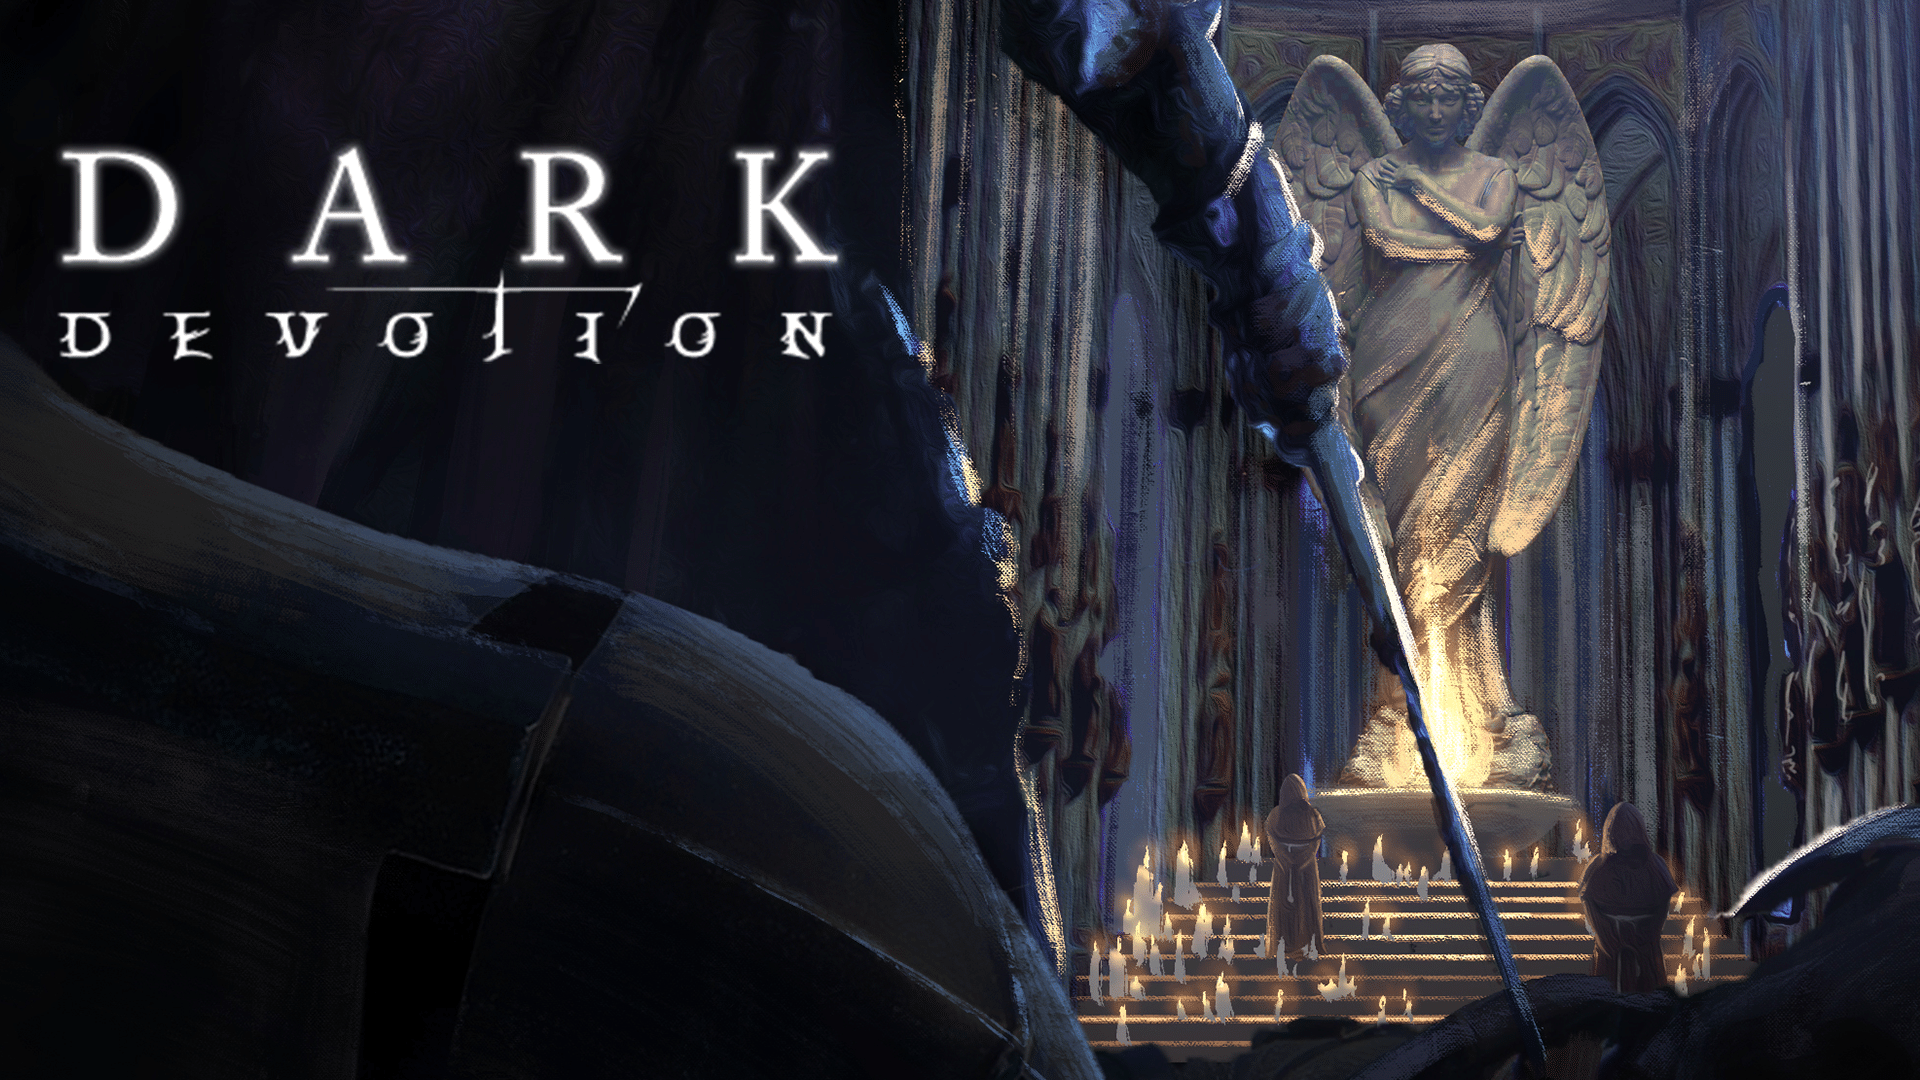 Dark Devotion reconfirmed launching early 2019